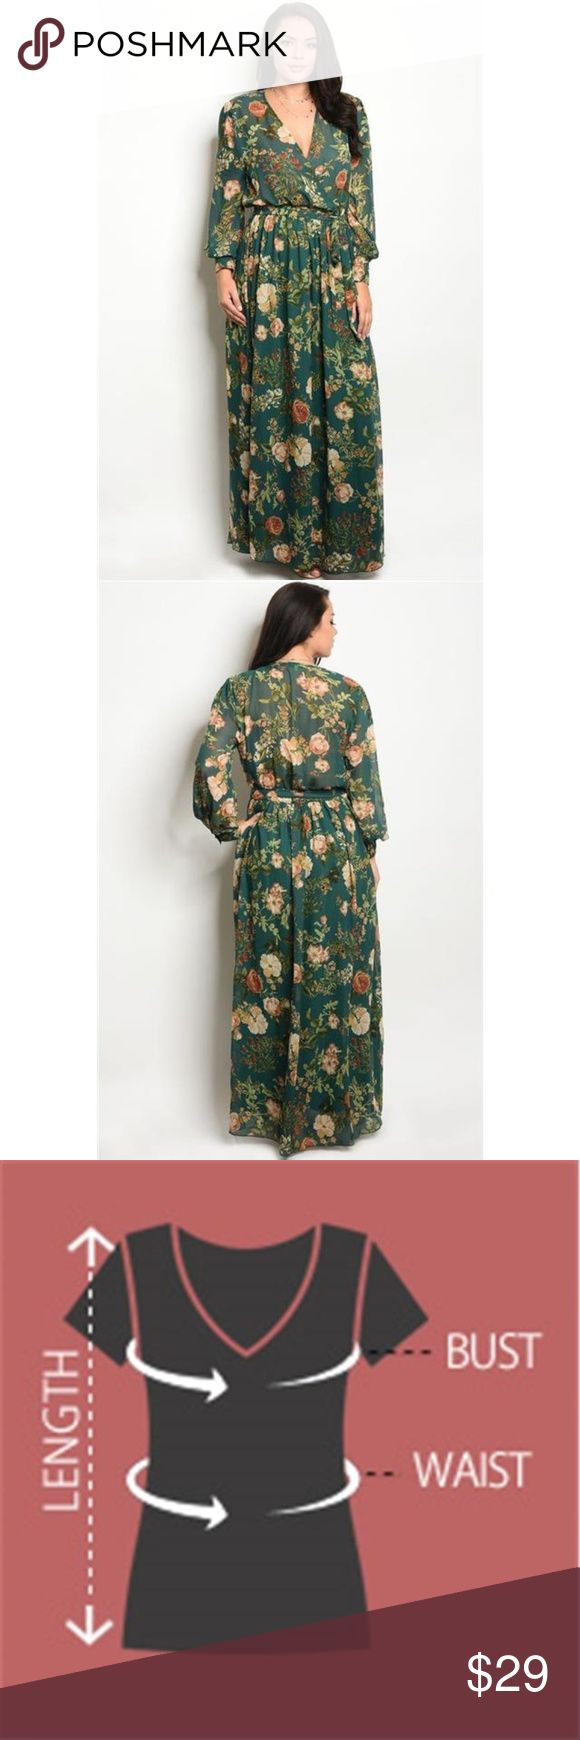 "Curvy Plus Floral Chiffon Print Maxi Dress Ladies fashion plus size floral print chiffon maxi dress with a v neckline. Wrap Drape Style with attached material belt. Button cuff accent. Fabulous to wear alone or to layer over leggings. Recommended to wear a tank or sheath dress underneath. New in Package.   Imported  1XL.2XL.3XL 100% Polyester   Hunter Green  WFS  Item Measurements: SIZE 1XL Measurements:  SIZE 1XL Length:62"" Waist:48"" Bust:52"" SIZE 2XL Length:63"" Waist:50"" Bust:54"" SIZE 3XL…"